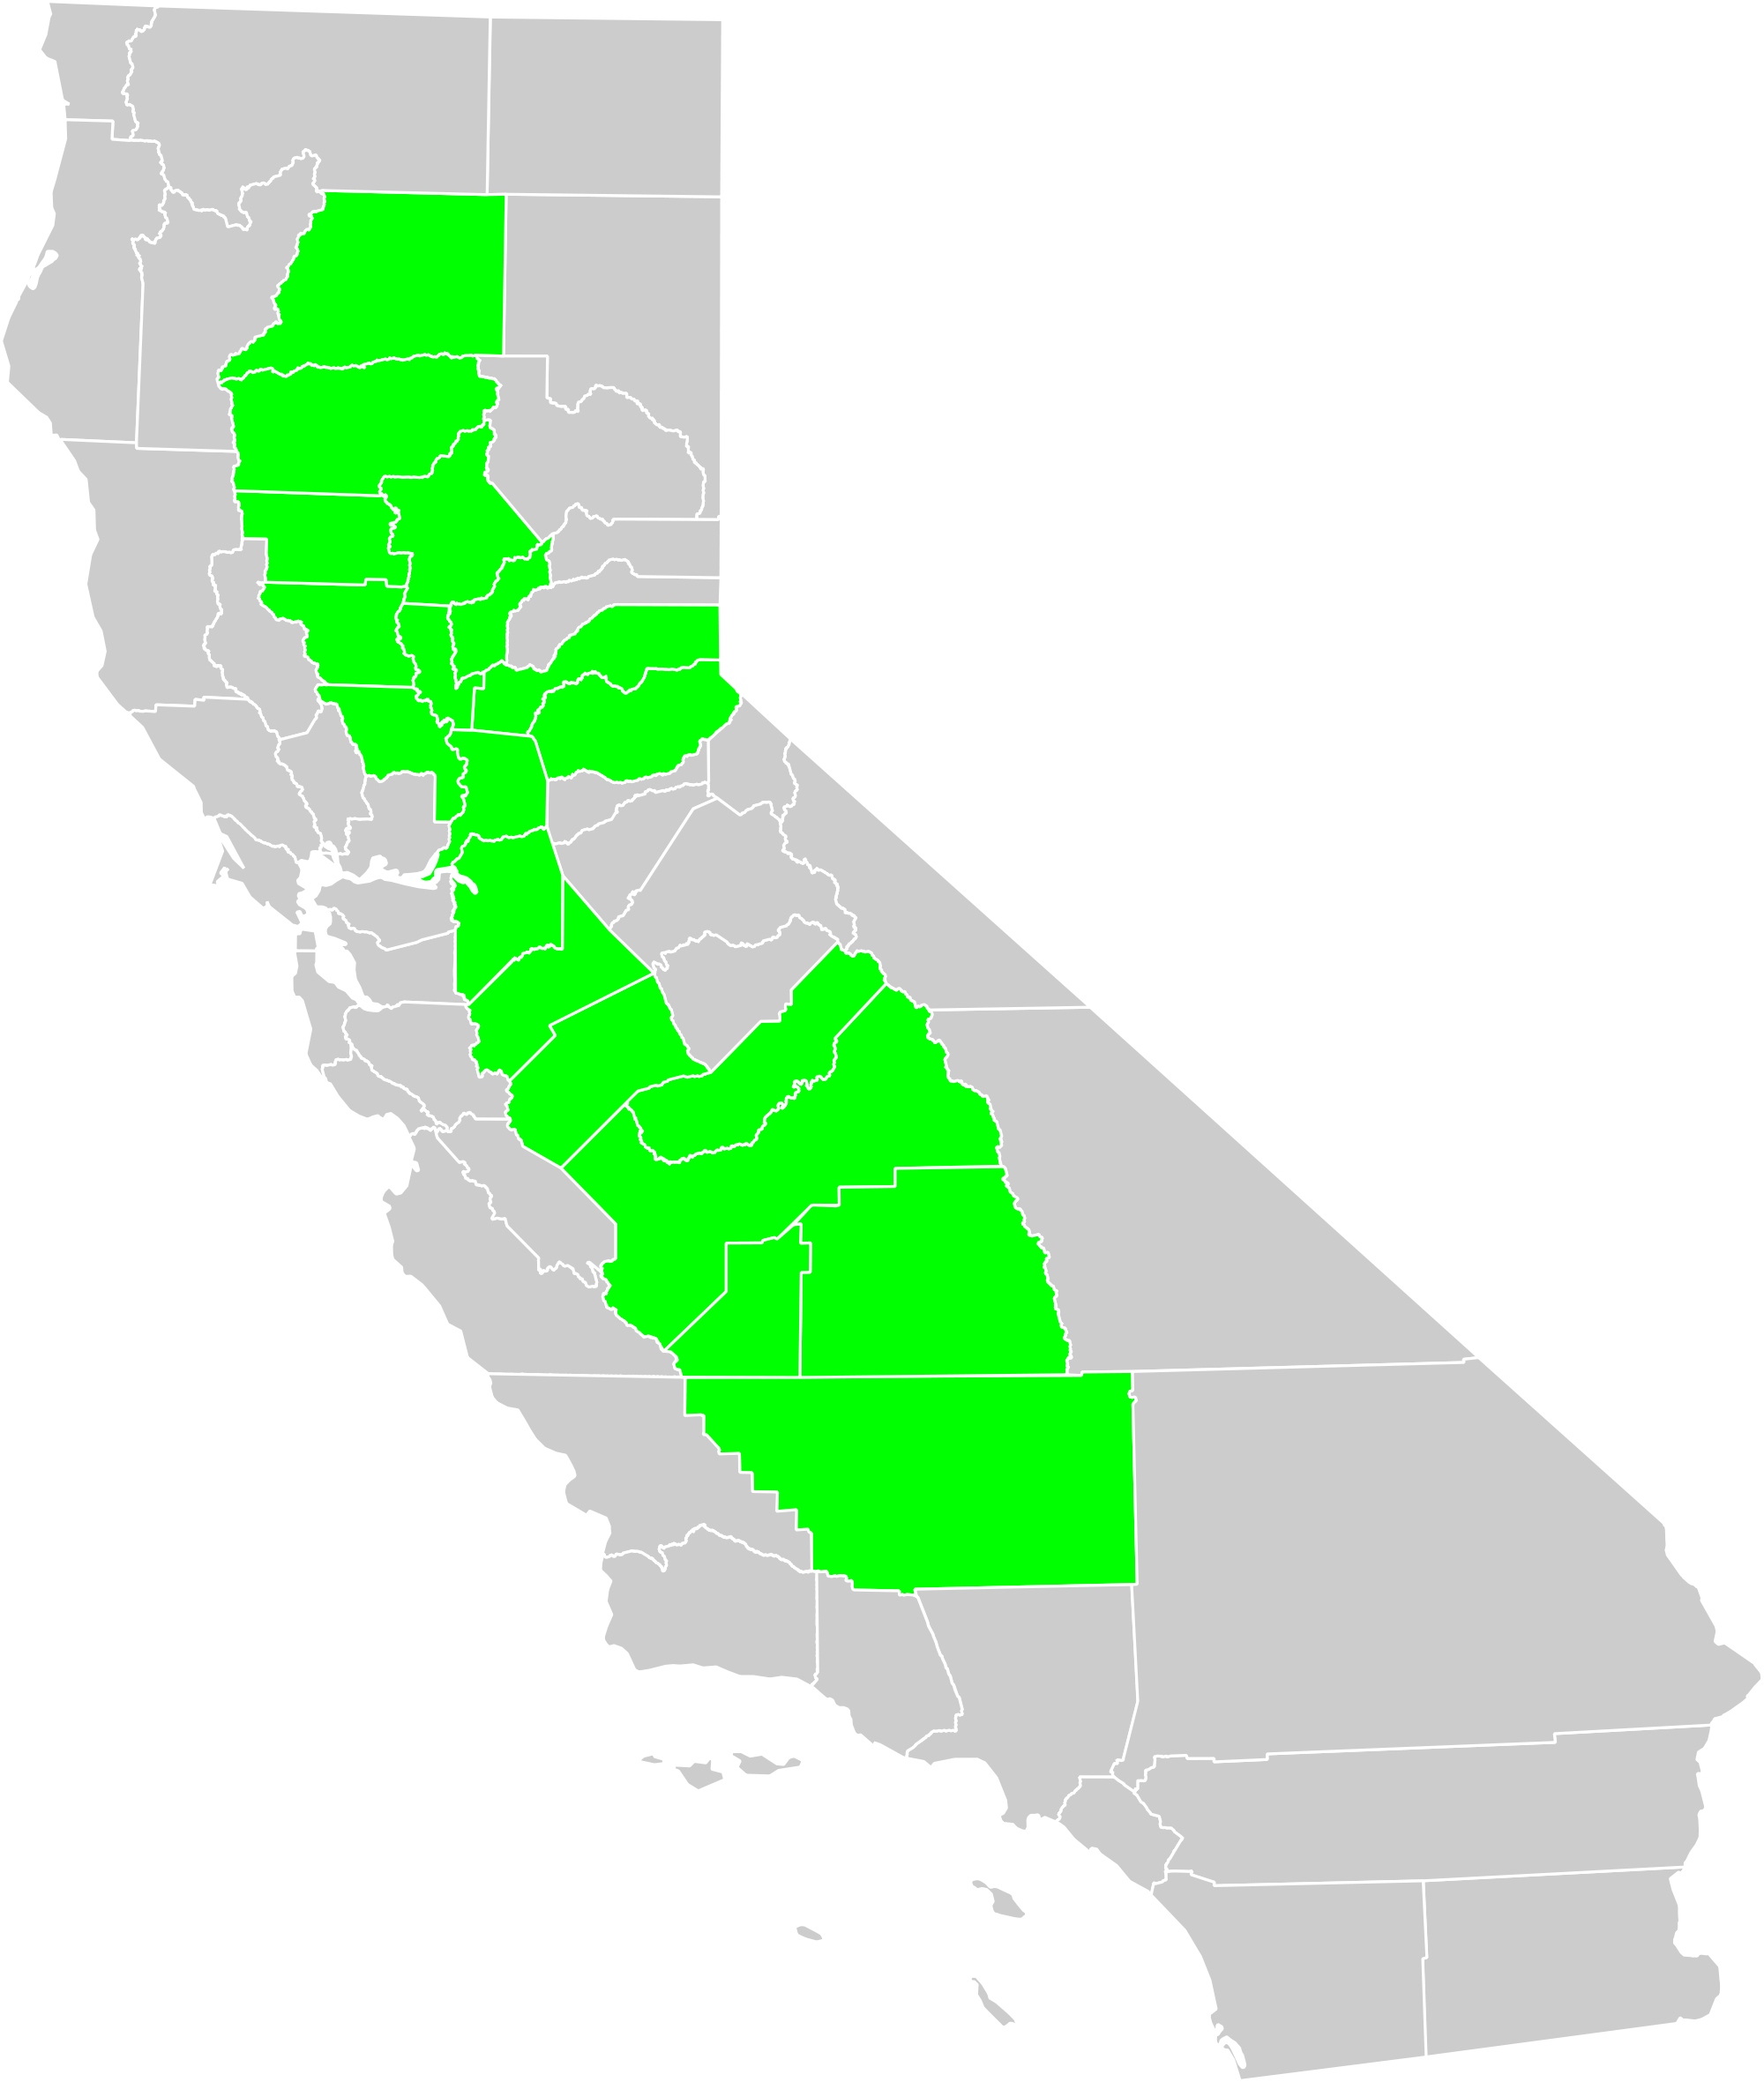 Clipart california map clip black and white stock File:California Central Valley county map.svg - Wikimedia Commons clip black and white stock